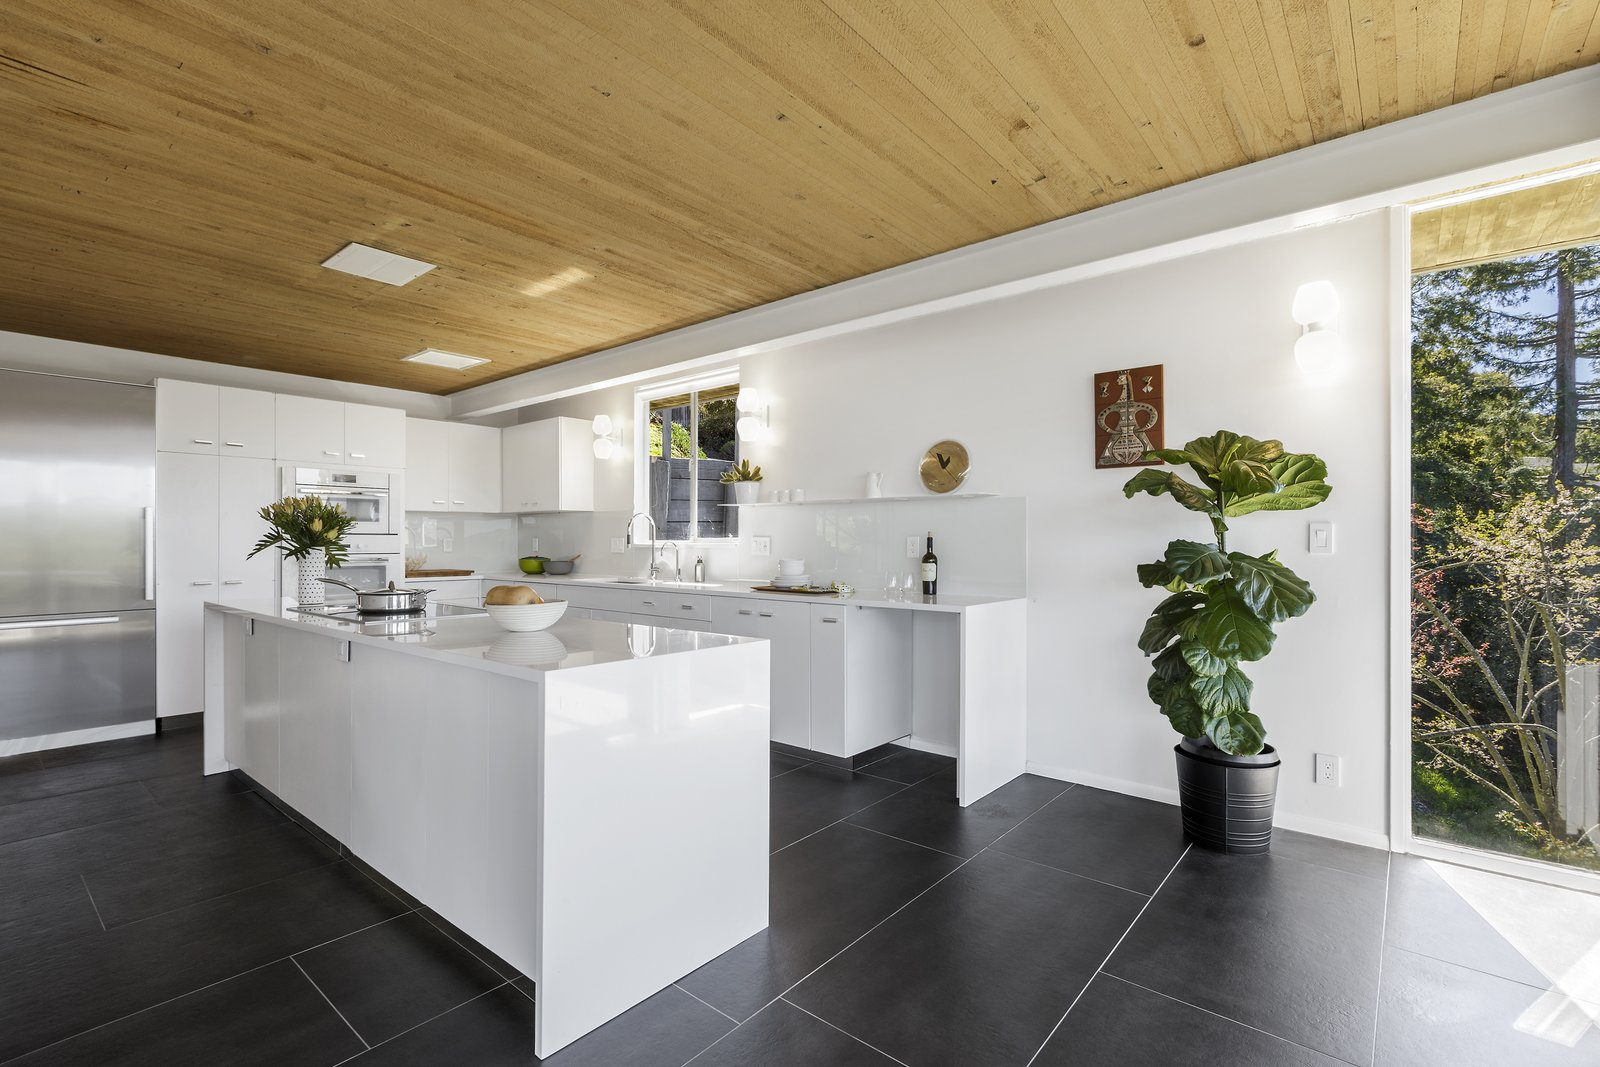 Kitchen, White Cabinet, Refrigerator, Wall Lighting, Undermount Sink, Cooktops, and Wall Oven  Photo 12 of 17 in Spend the Night in an Iconic Case Study House North of San Francisco